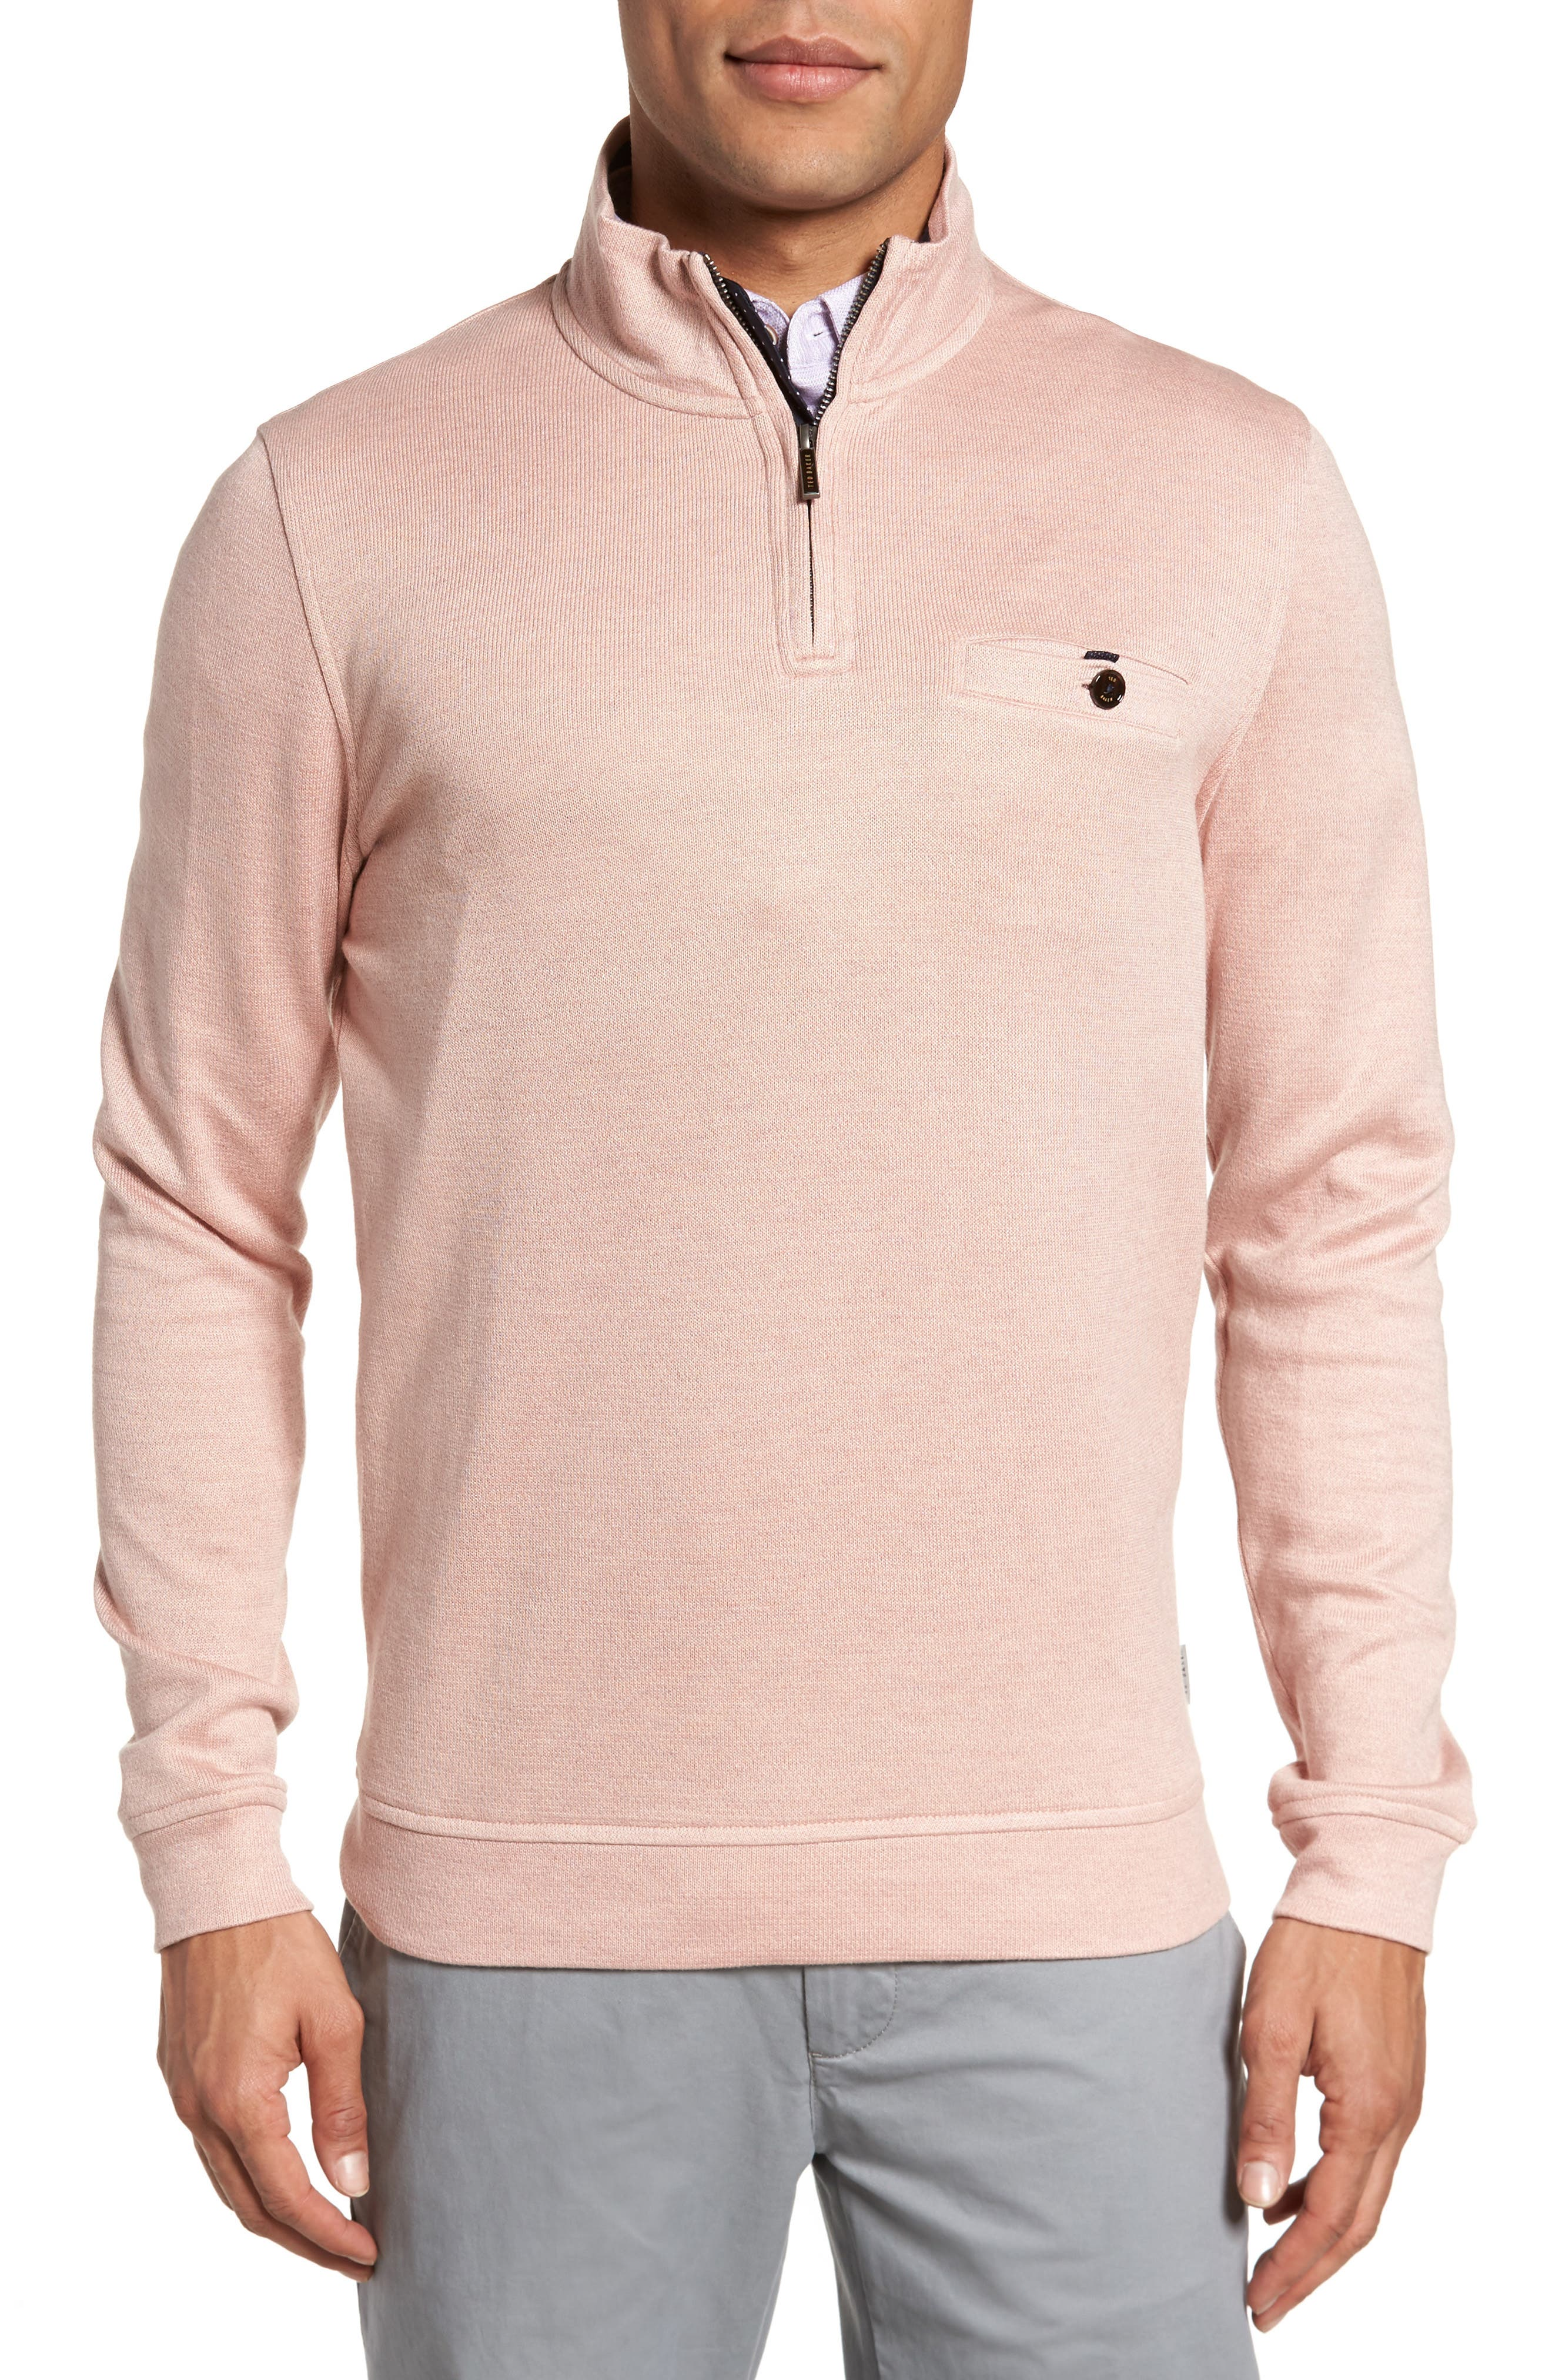 Valerio Quarter Zip Pullover,                             Main thumbnail 1, color,                             Dusky Pink